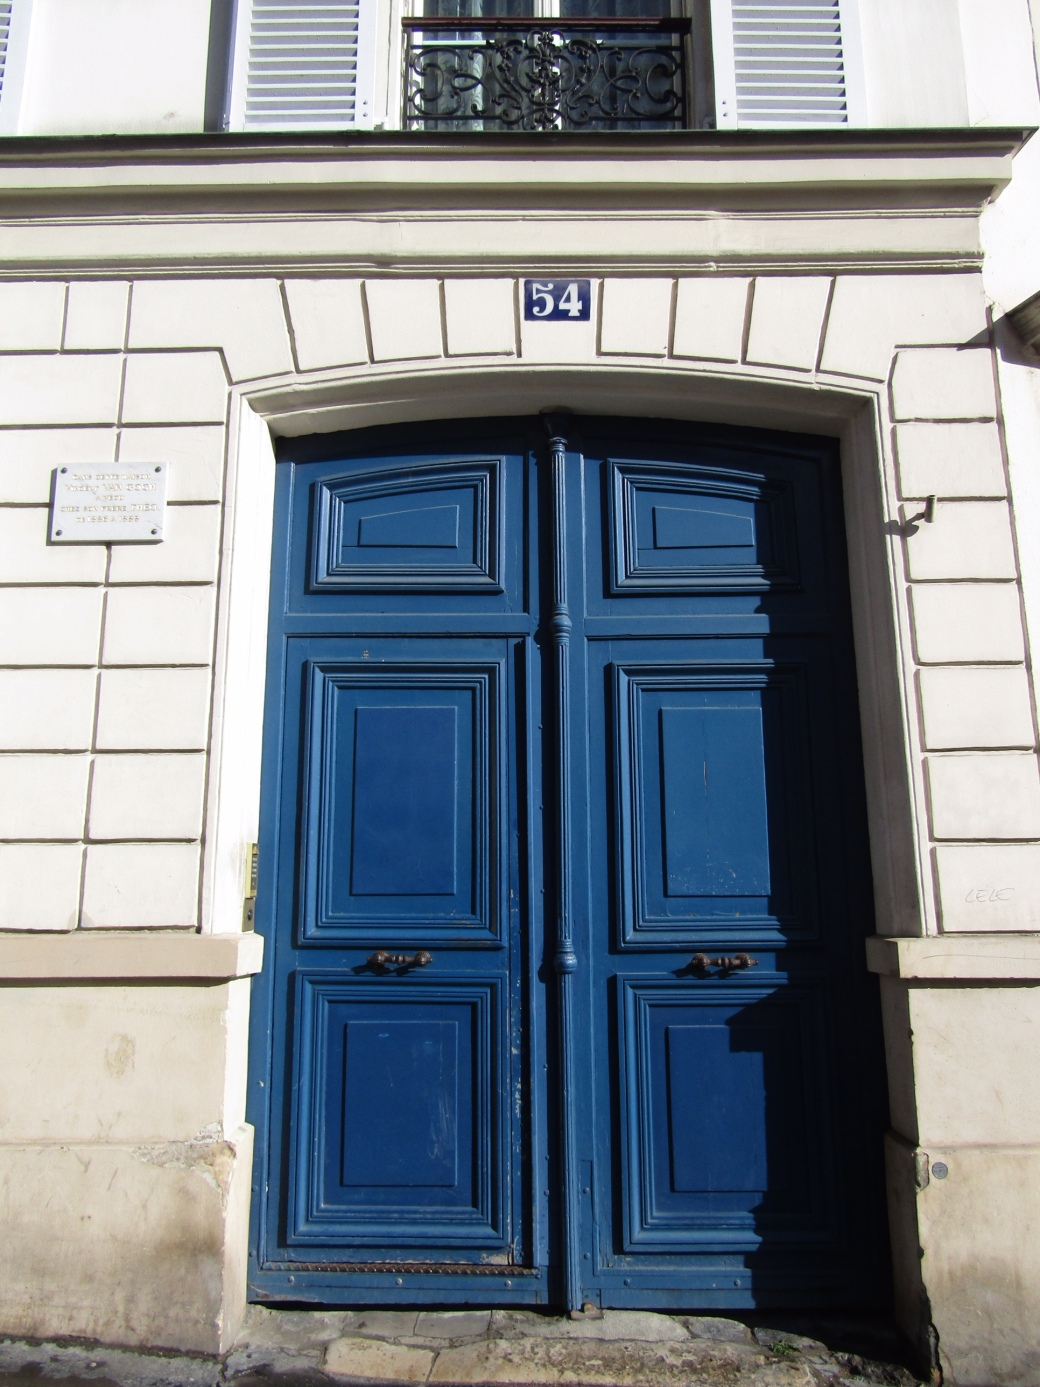 House 54 on Rue Lepic once belonged to Vincent van Gogh's brother Theo, who allowed the struggling artist to live and work there while developing his signature style.